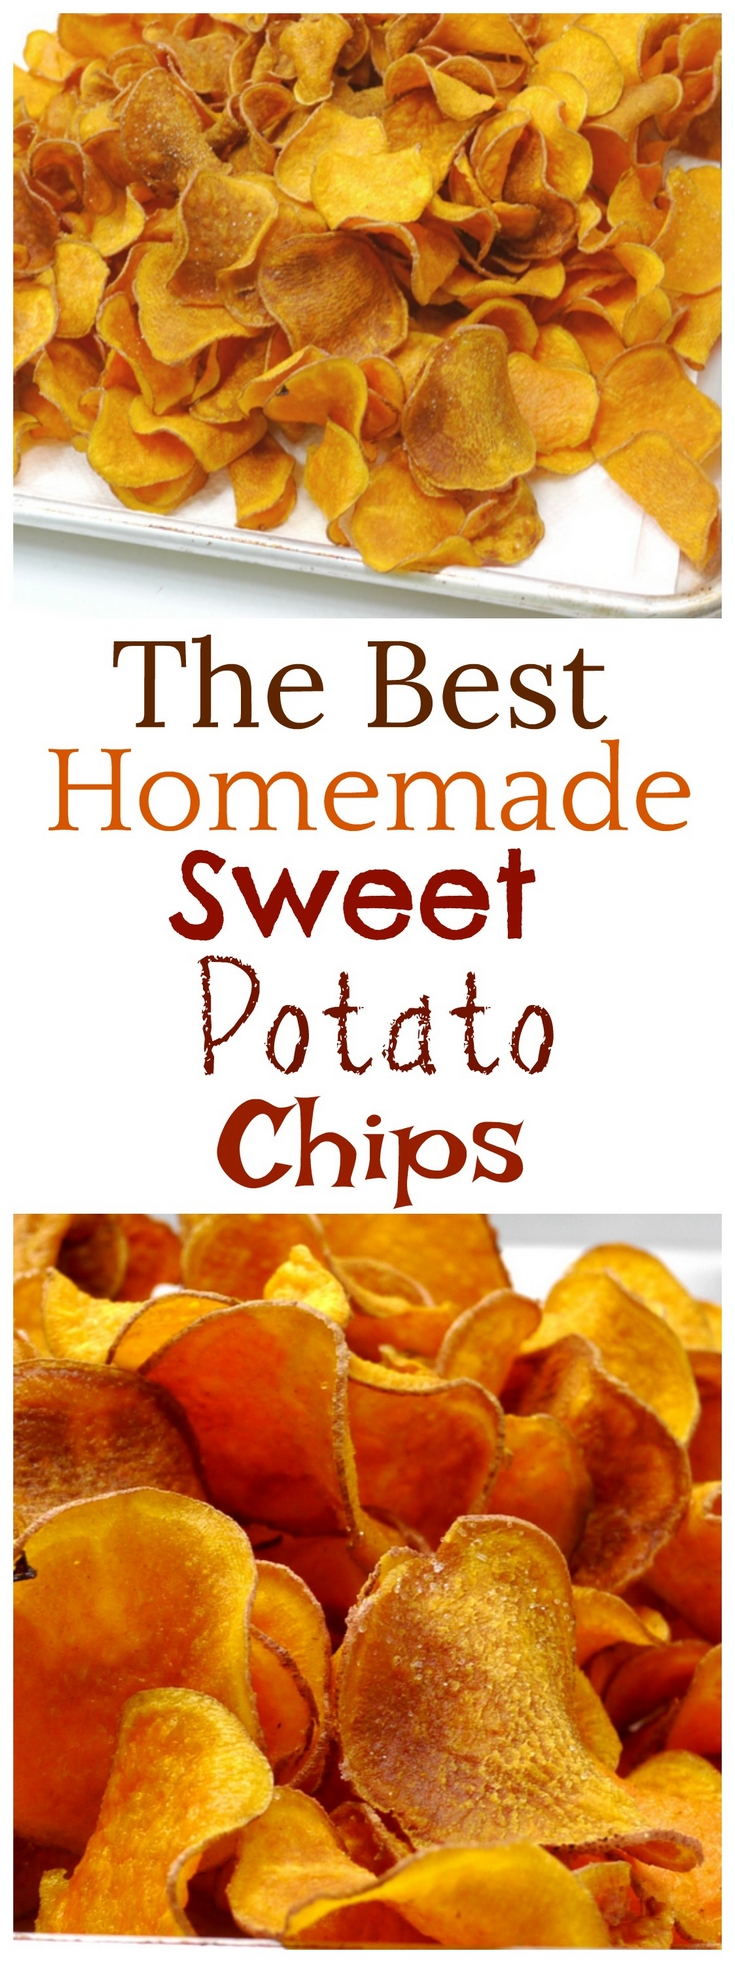 While it's so easy to purchase premade chips, surprise everyone with a bowl of The Best Homemade Sweet Potato Chips. The secret to the crispiest chips are in the thinness of the slice from NoblePig.com. via @cmpollak1